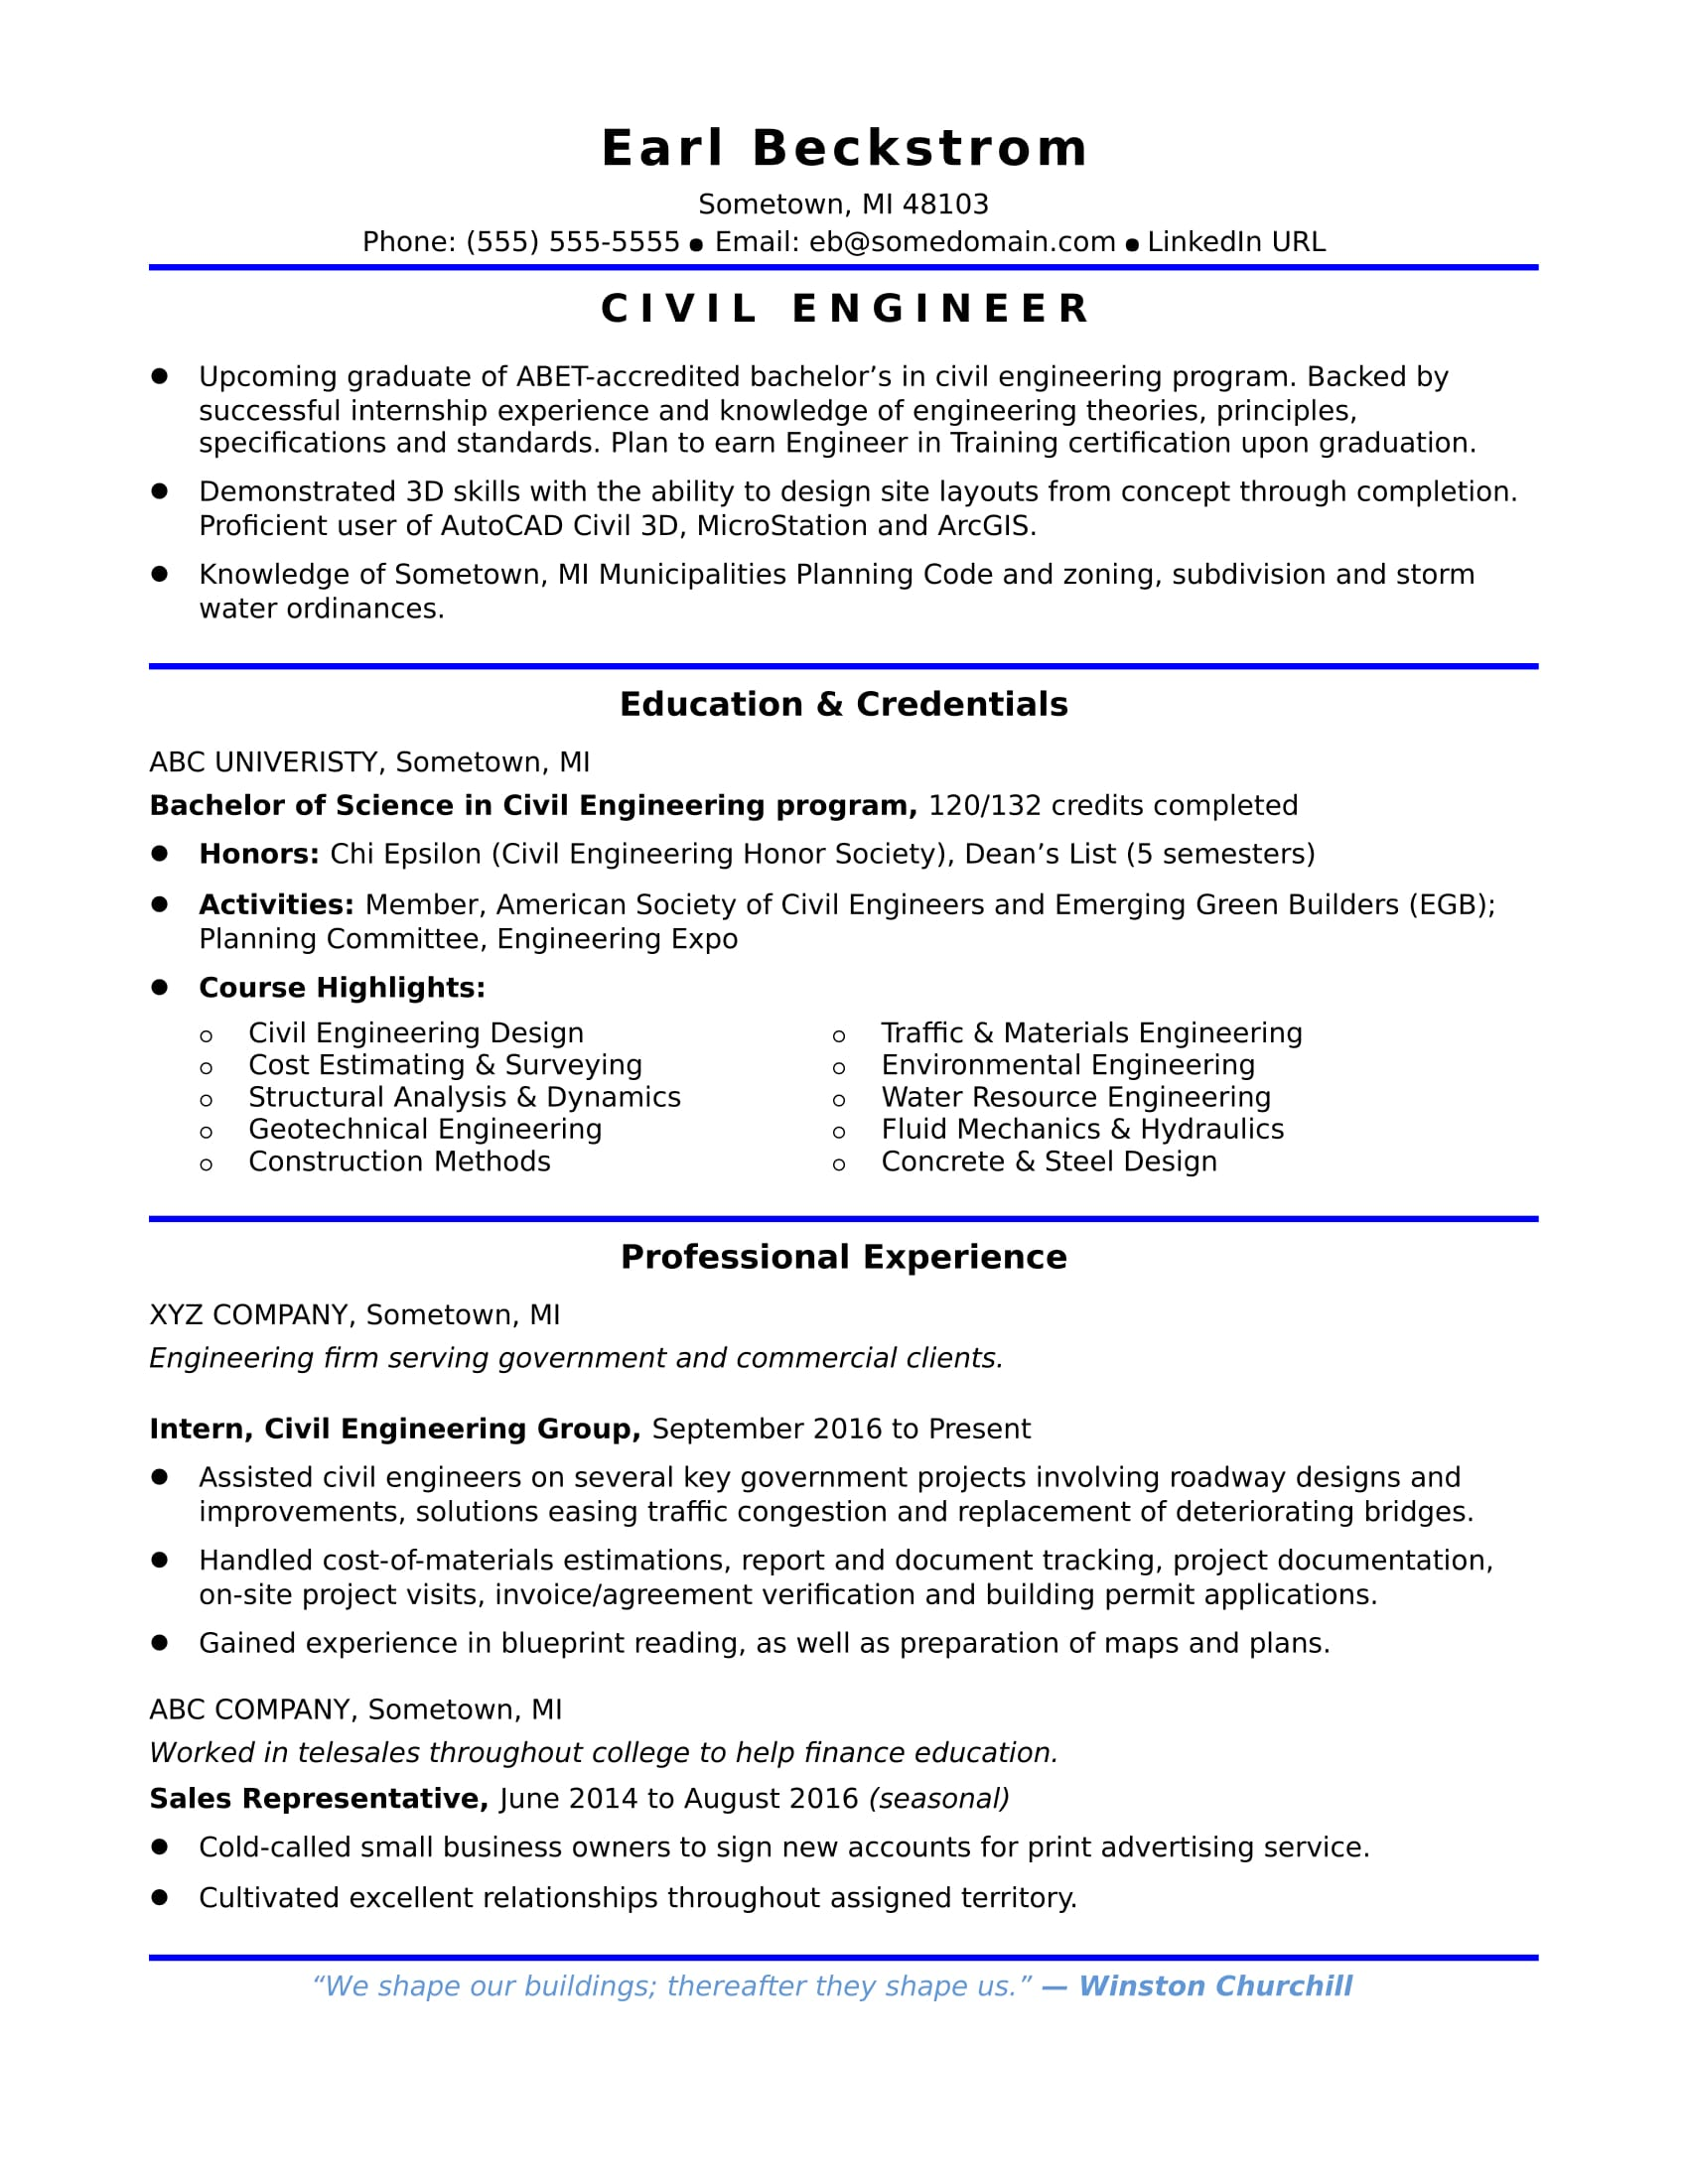 Sample Resume For An Entry Level Civil Engineer  Resume Examples Engineering